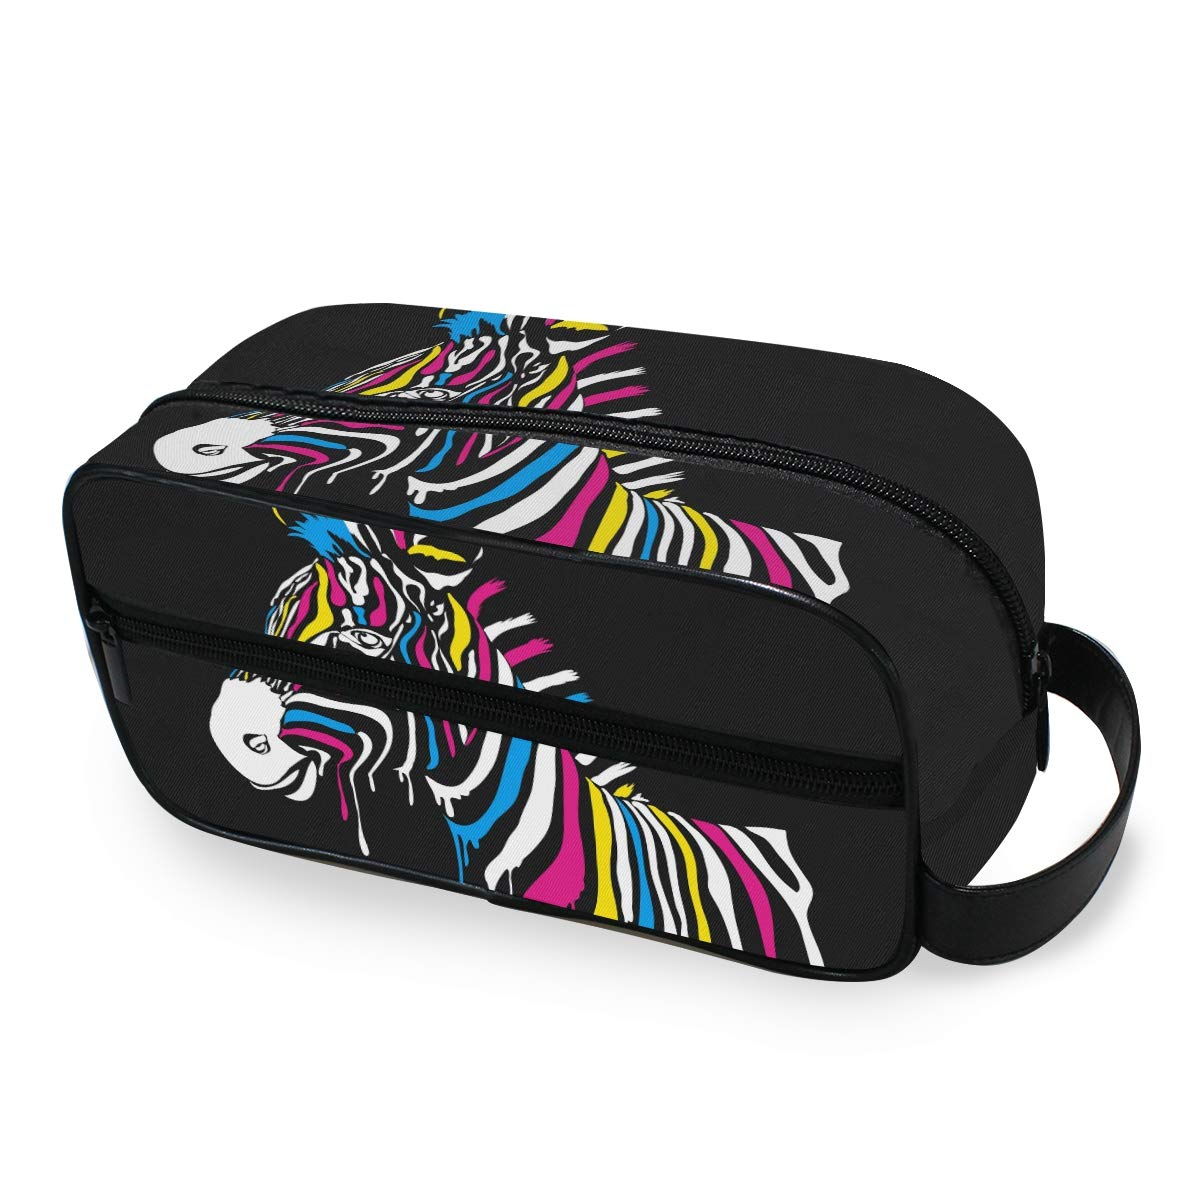 JOYPRINT Portable Travel Makeup Bag, Animal Zebra Print Rainbow Art Cosmetic Bag Toiletry Bag Pouch with Zipper Multifunction Cosmetic Case for Women Girls